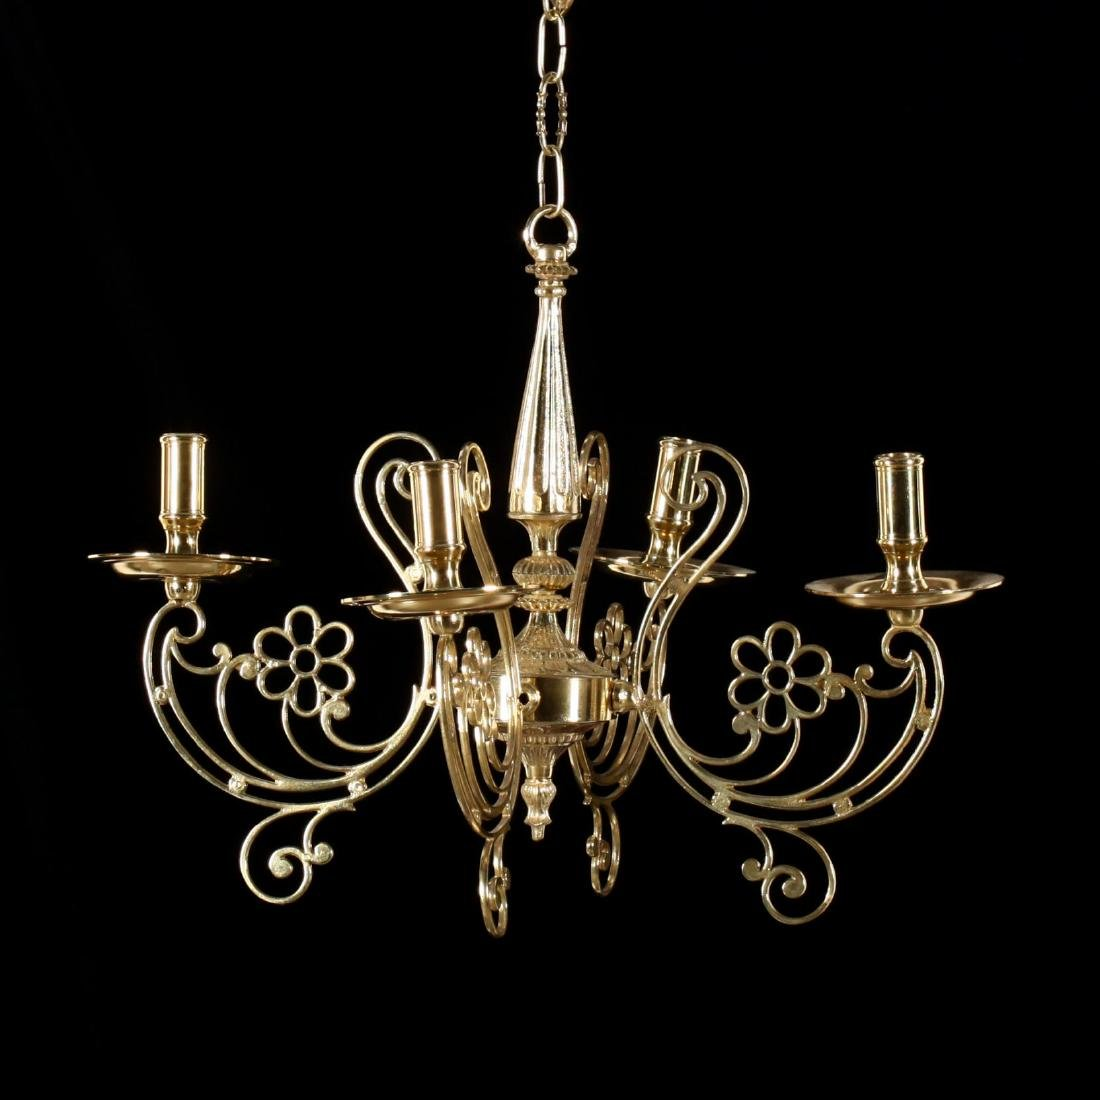 Contemporary Four-Arm Brass Chandelier